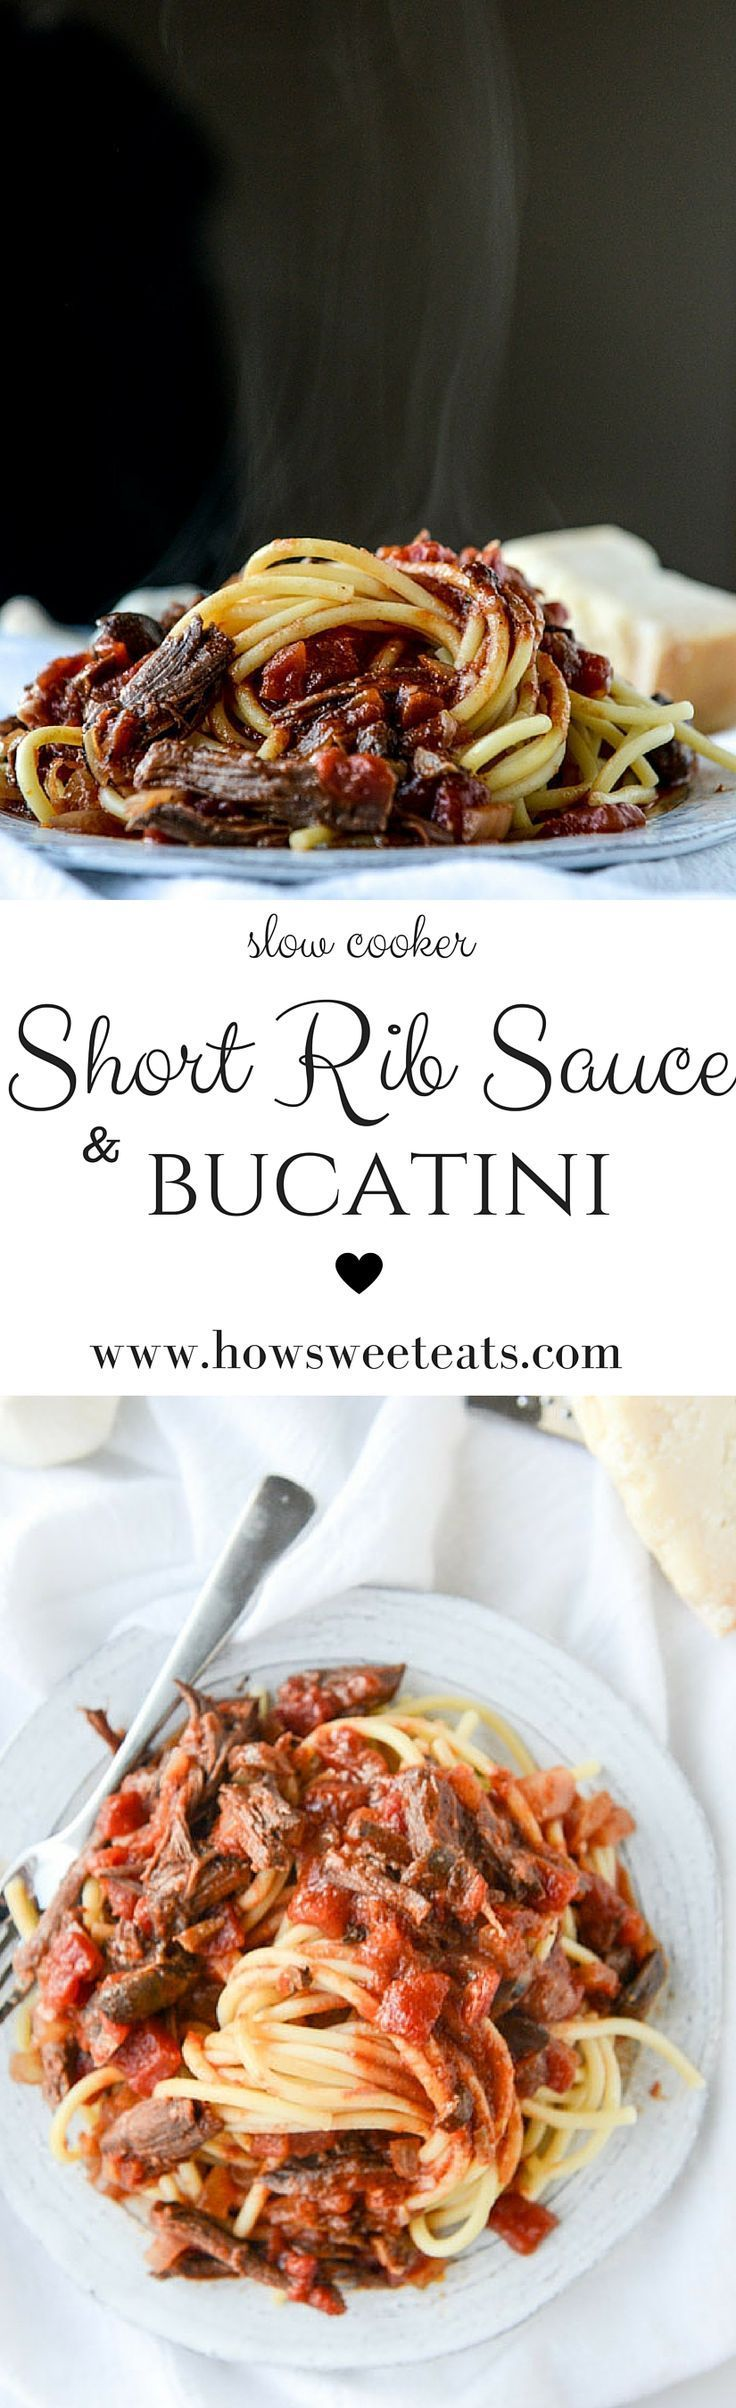 slow cooker short rib sauce with bucatini I http://howsweeteats.com